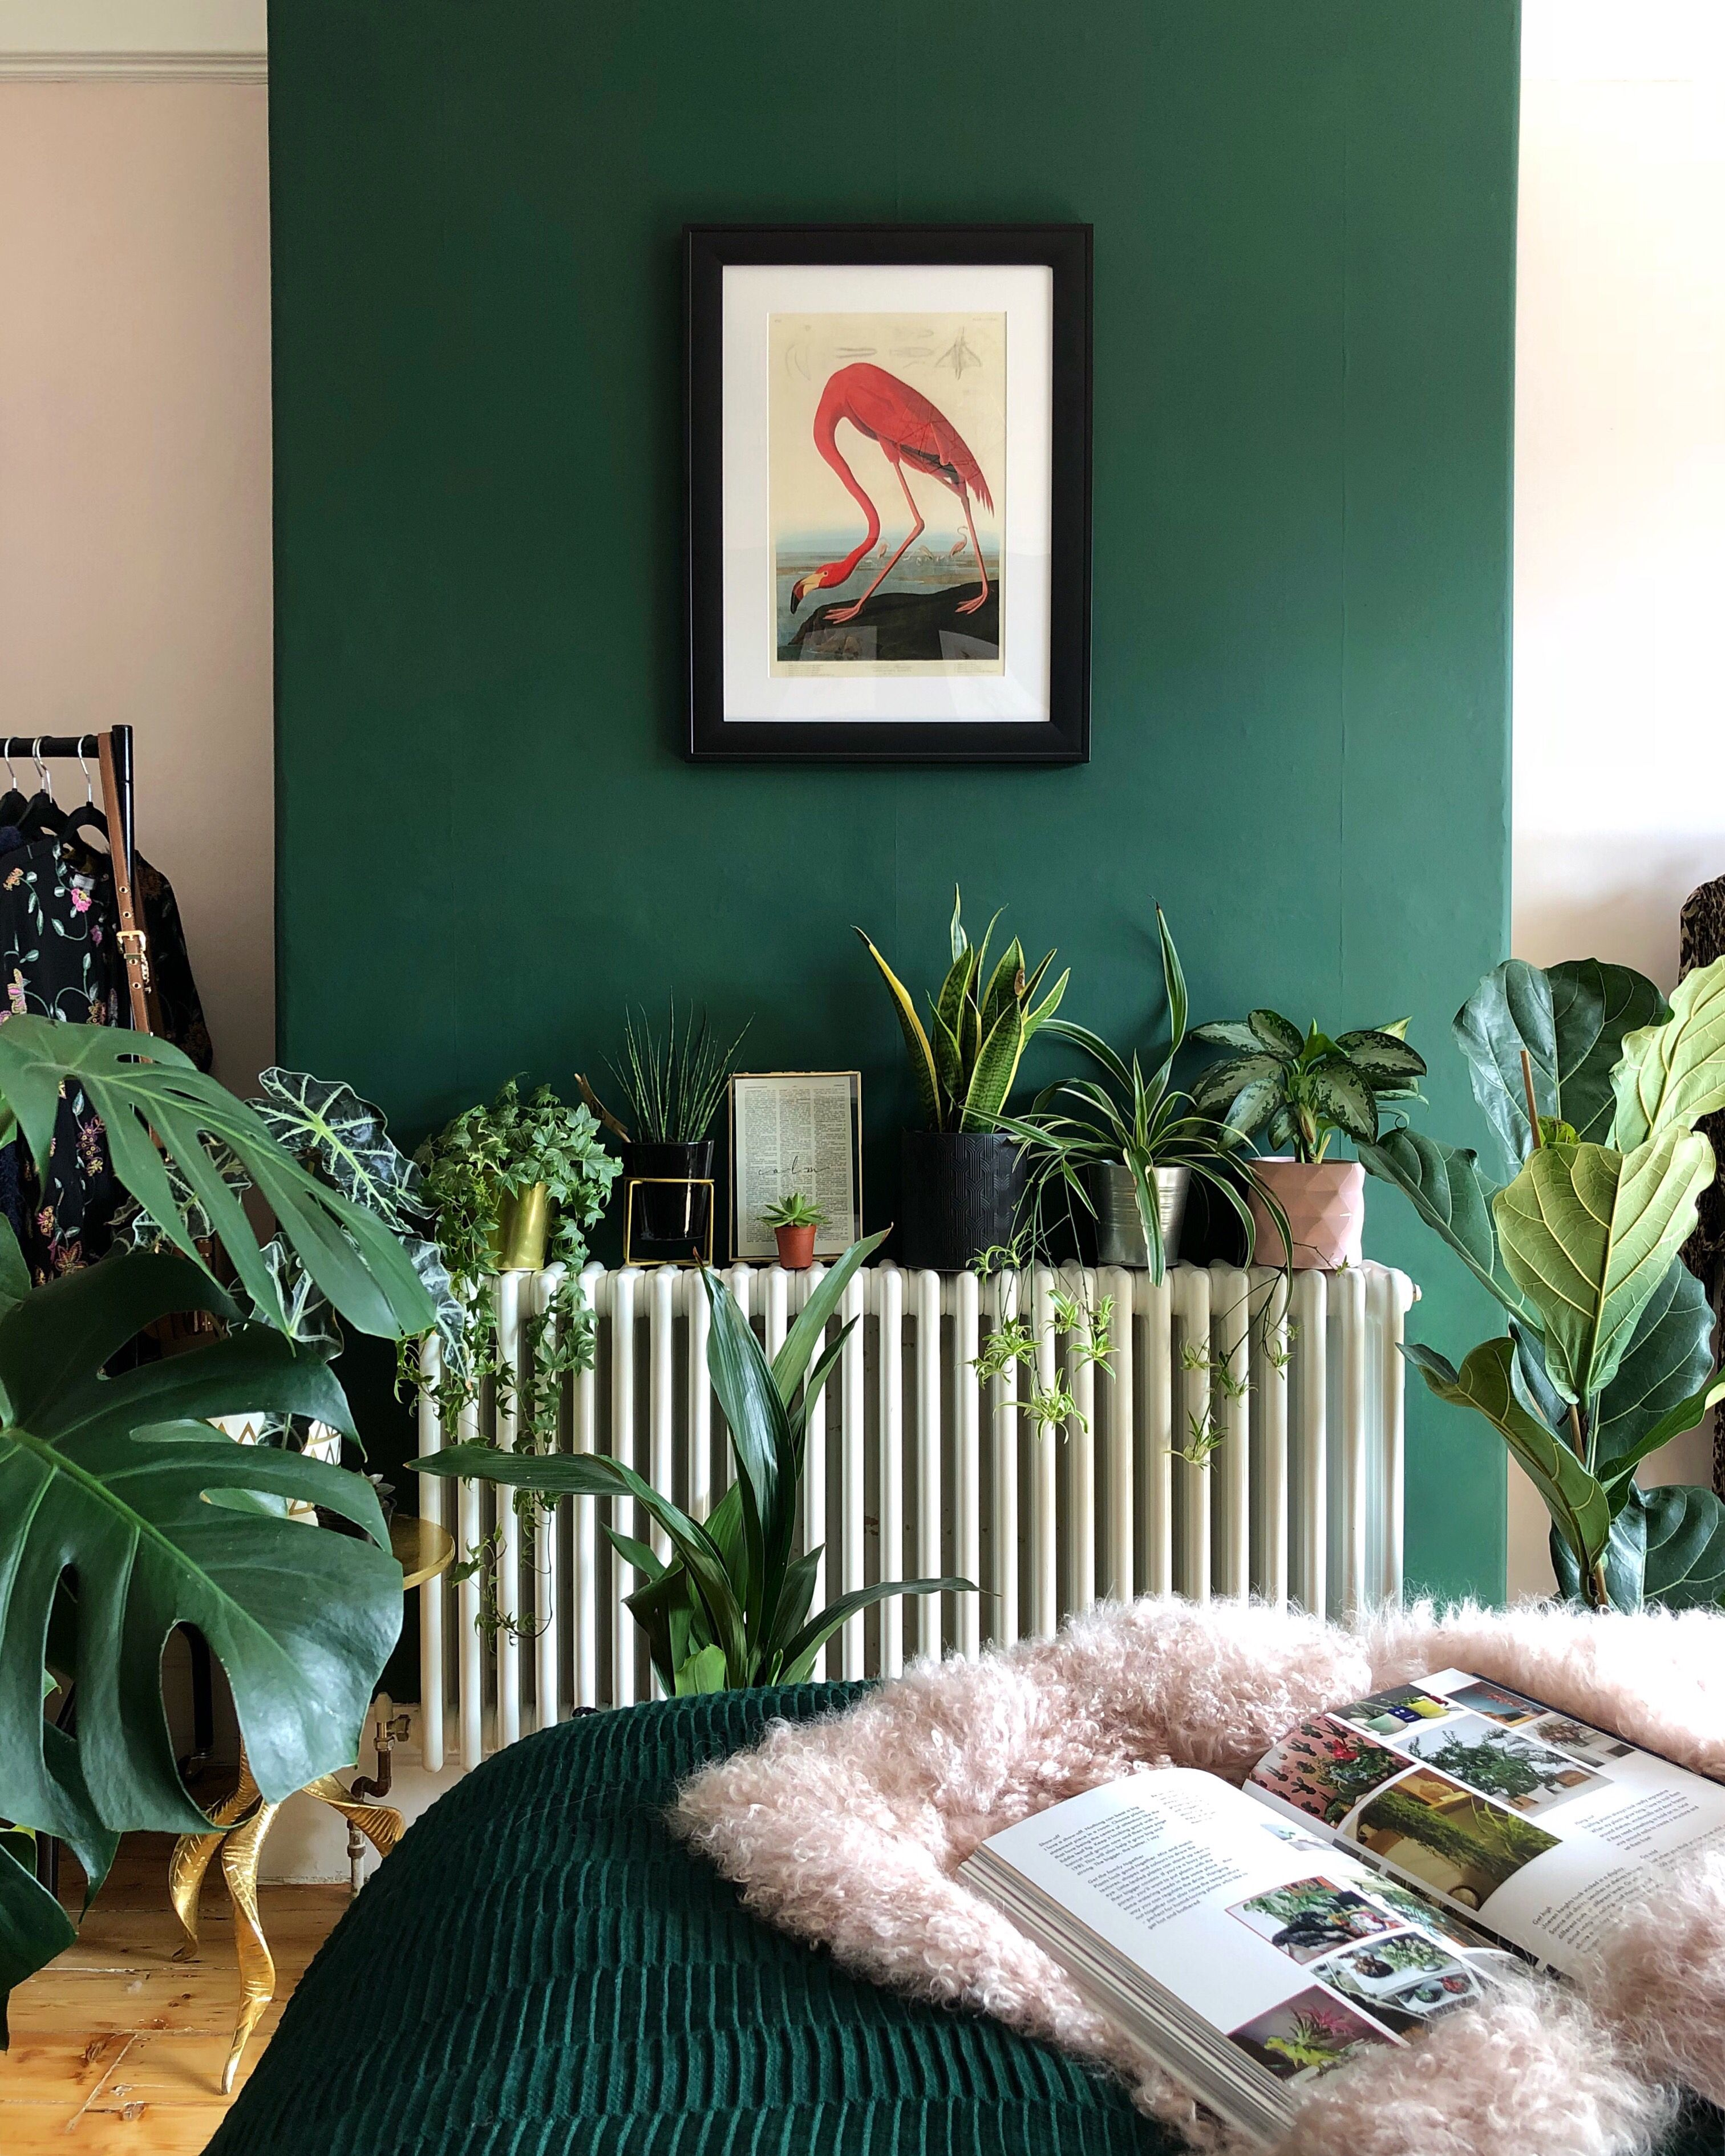 My Green And Pink Bedroom With Plants! #greenbedroom